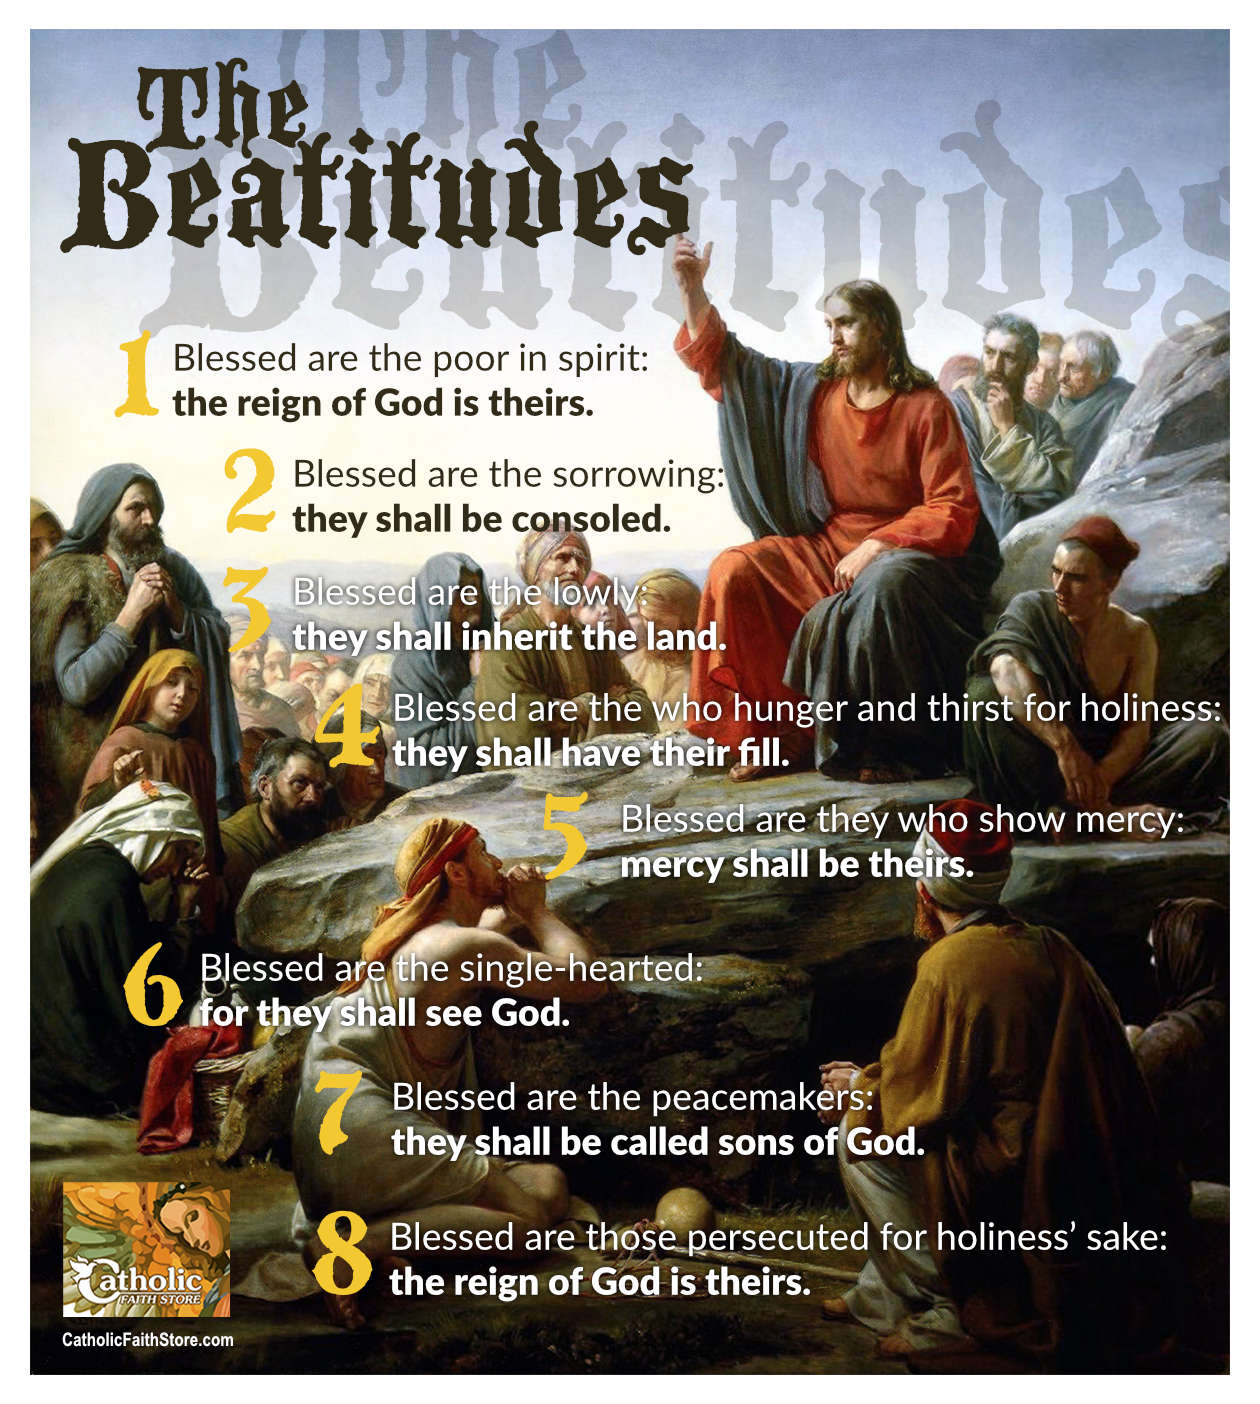 The Beatitudes — The Key to Happiness